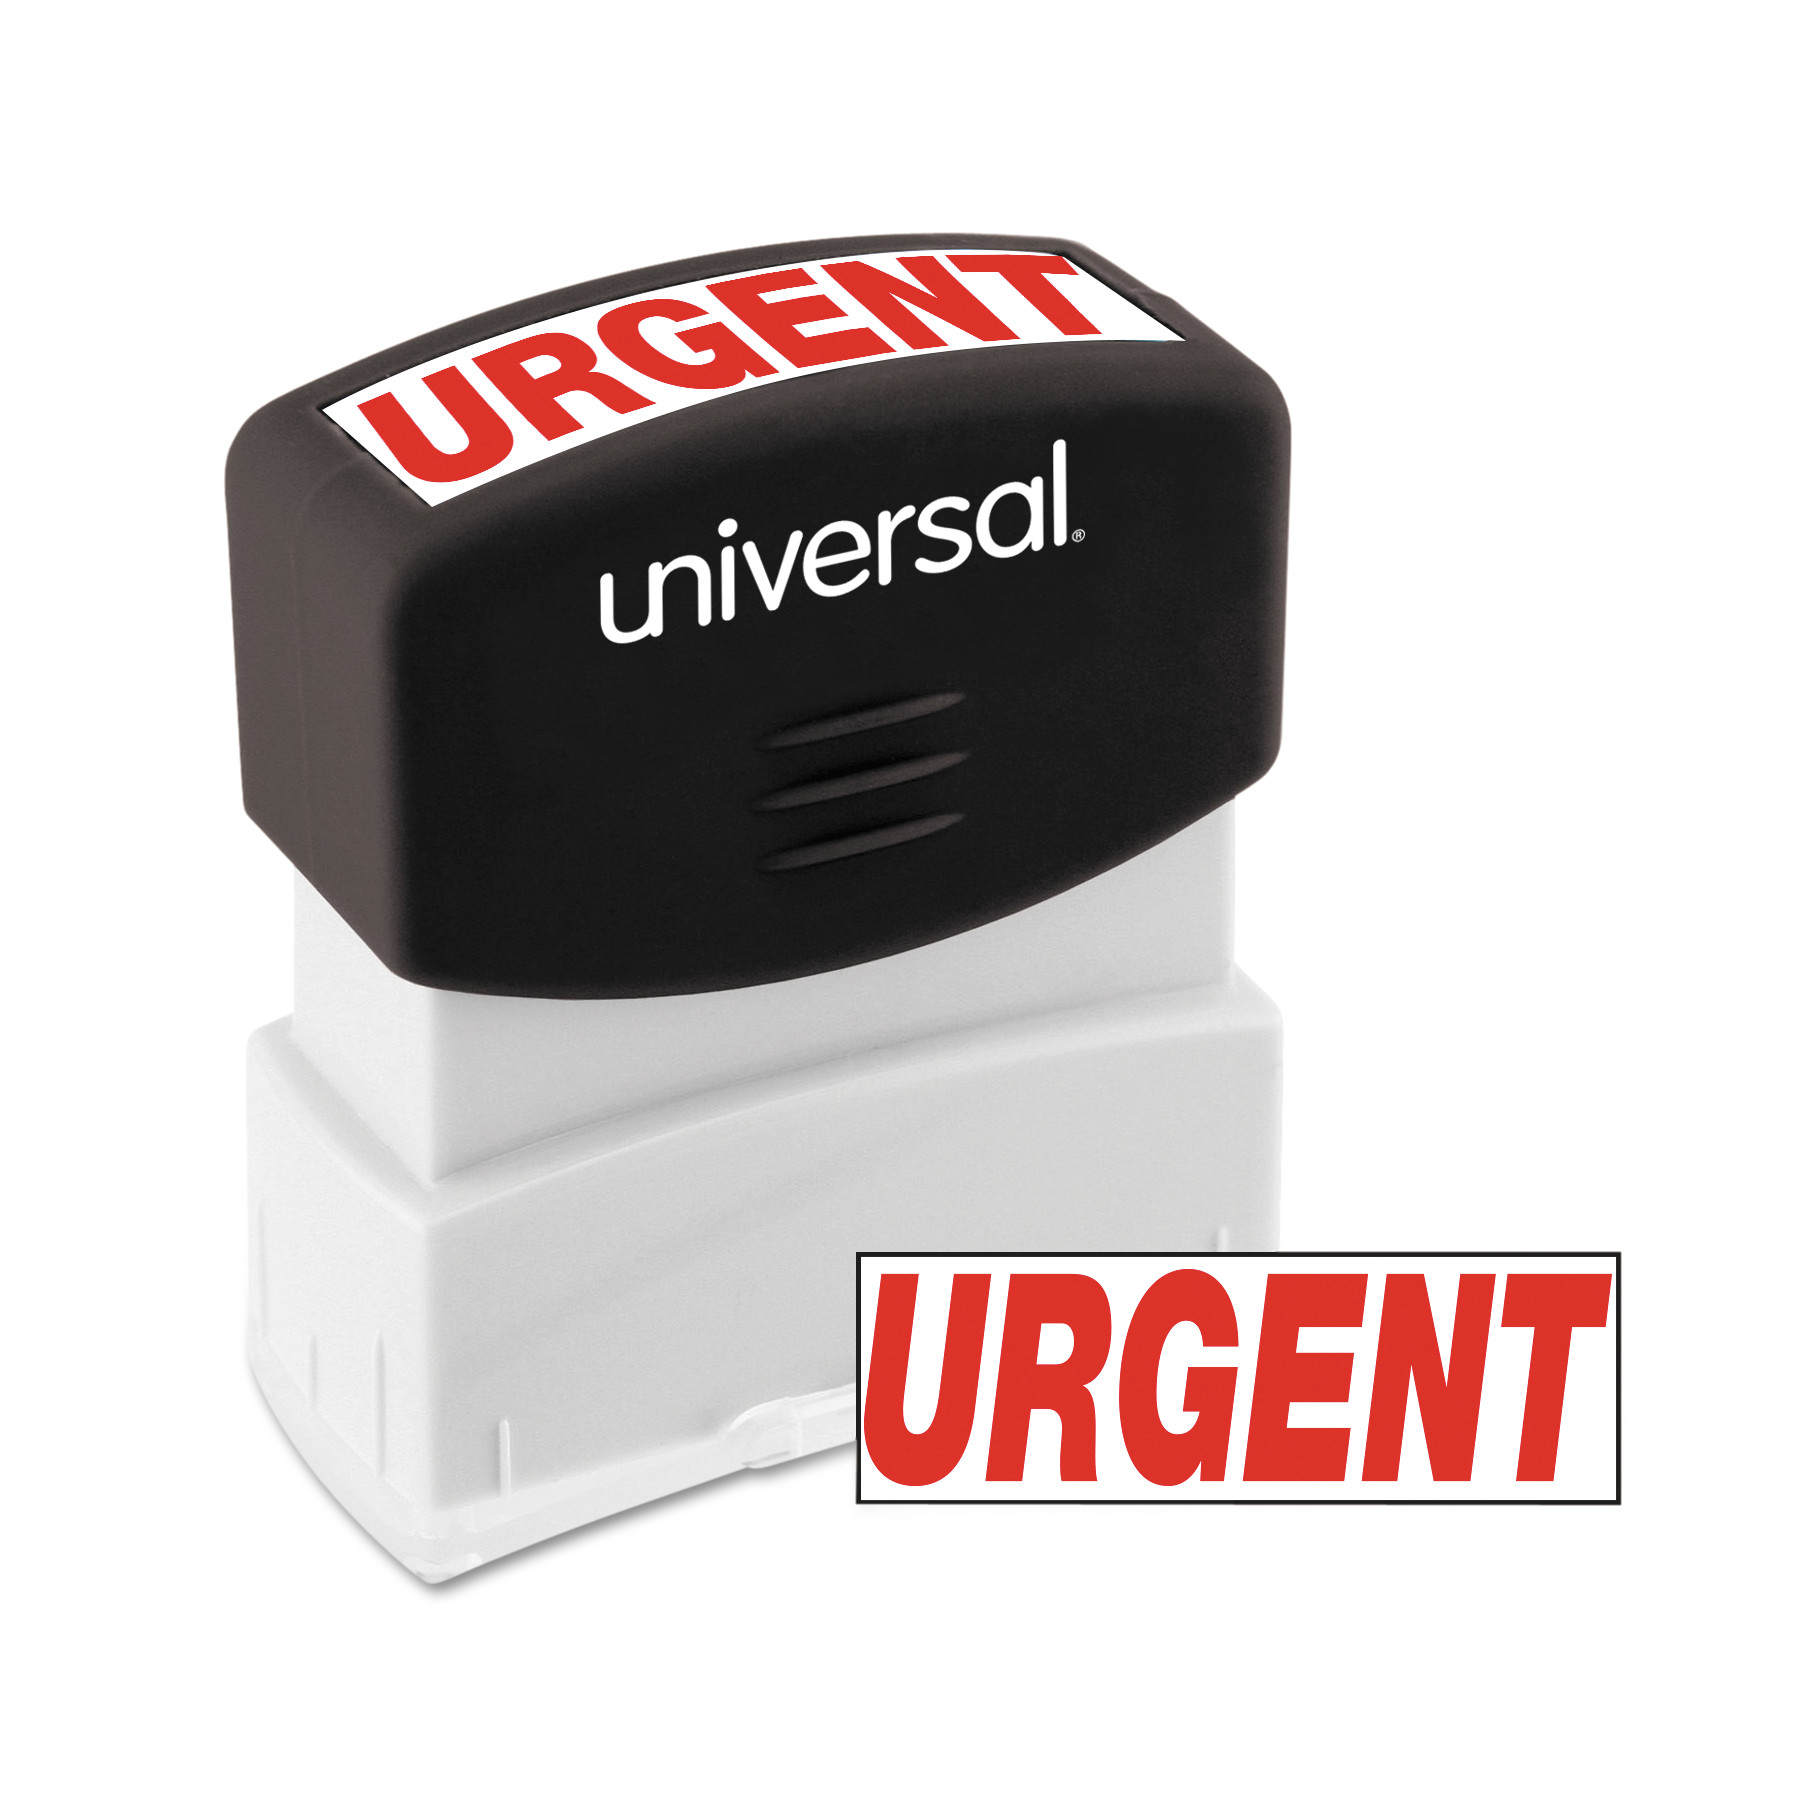 Universal Message Stamp, URGENT, Pre-Inked One-Color, Red by Universal Office Products